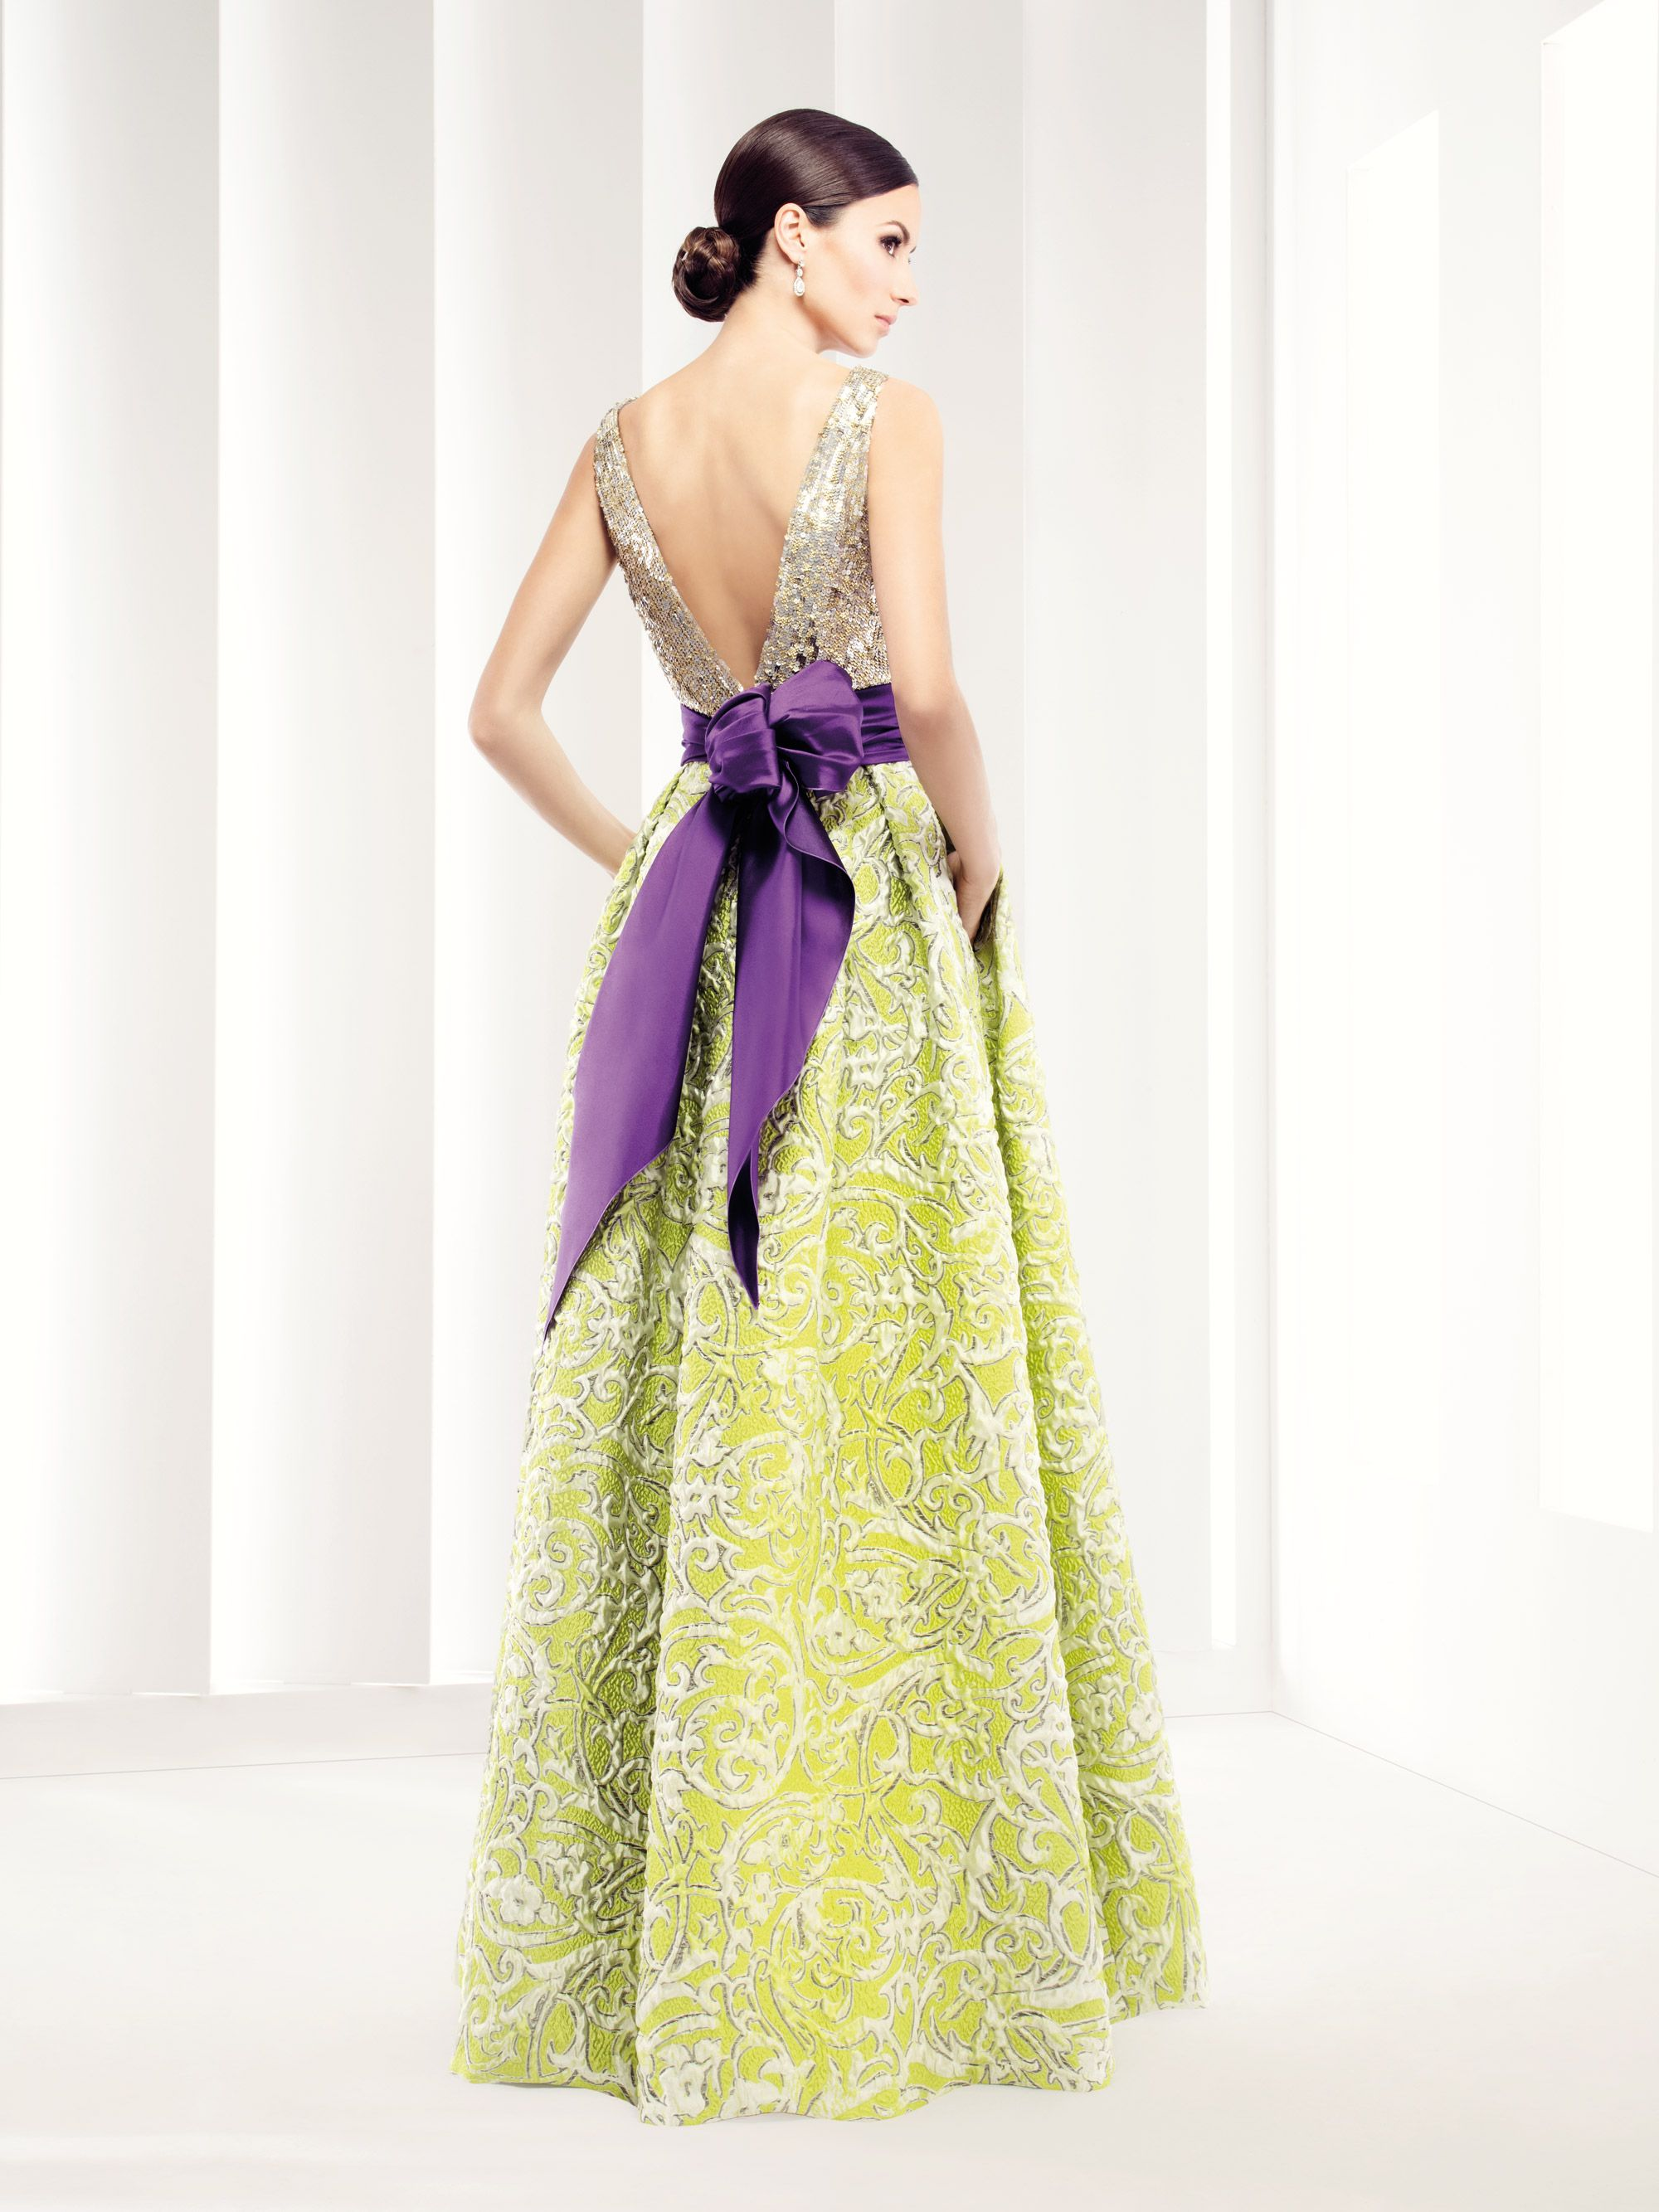 patricia avendaño party outfit pinterest party outfits